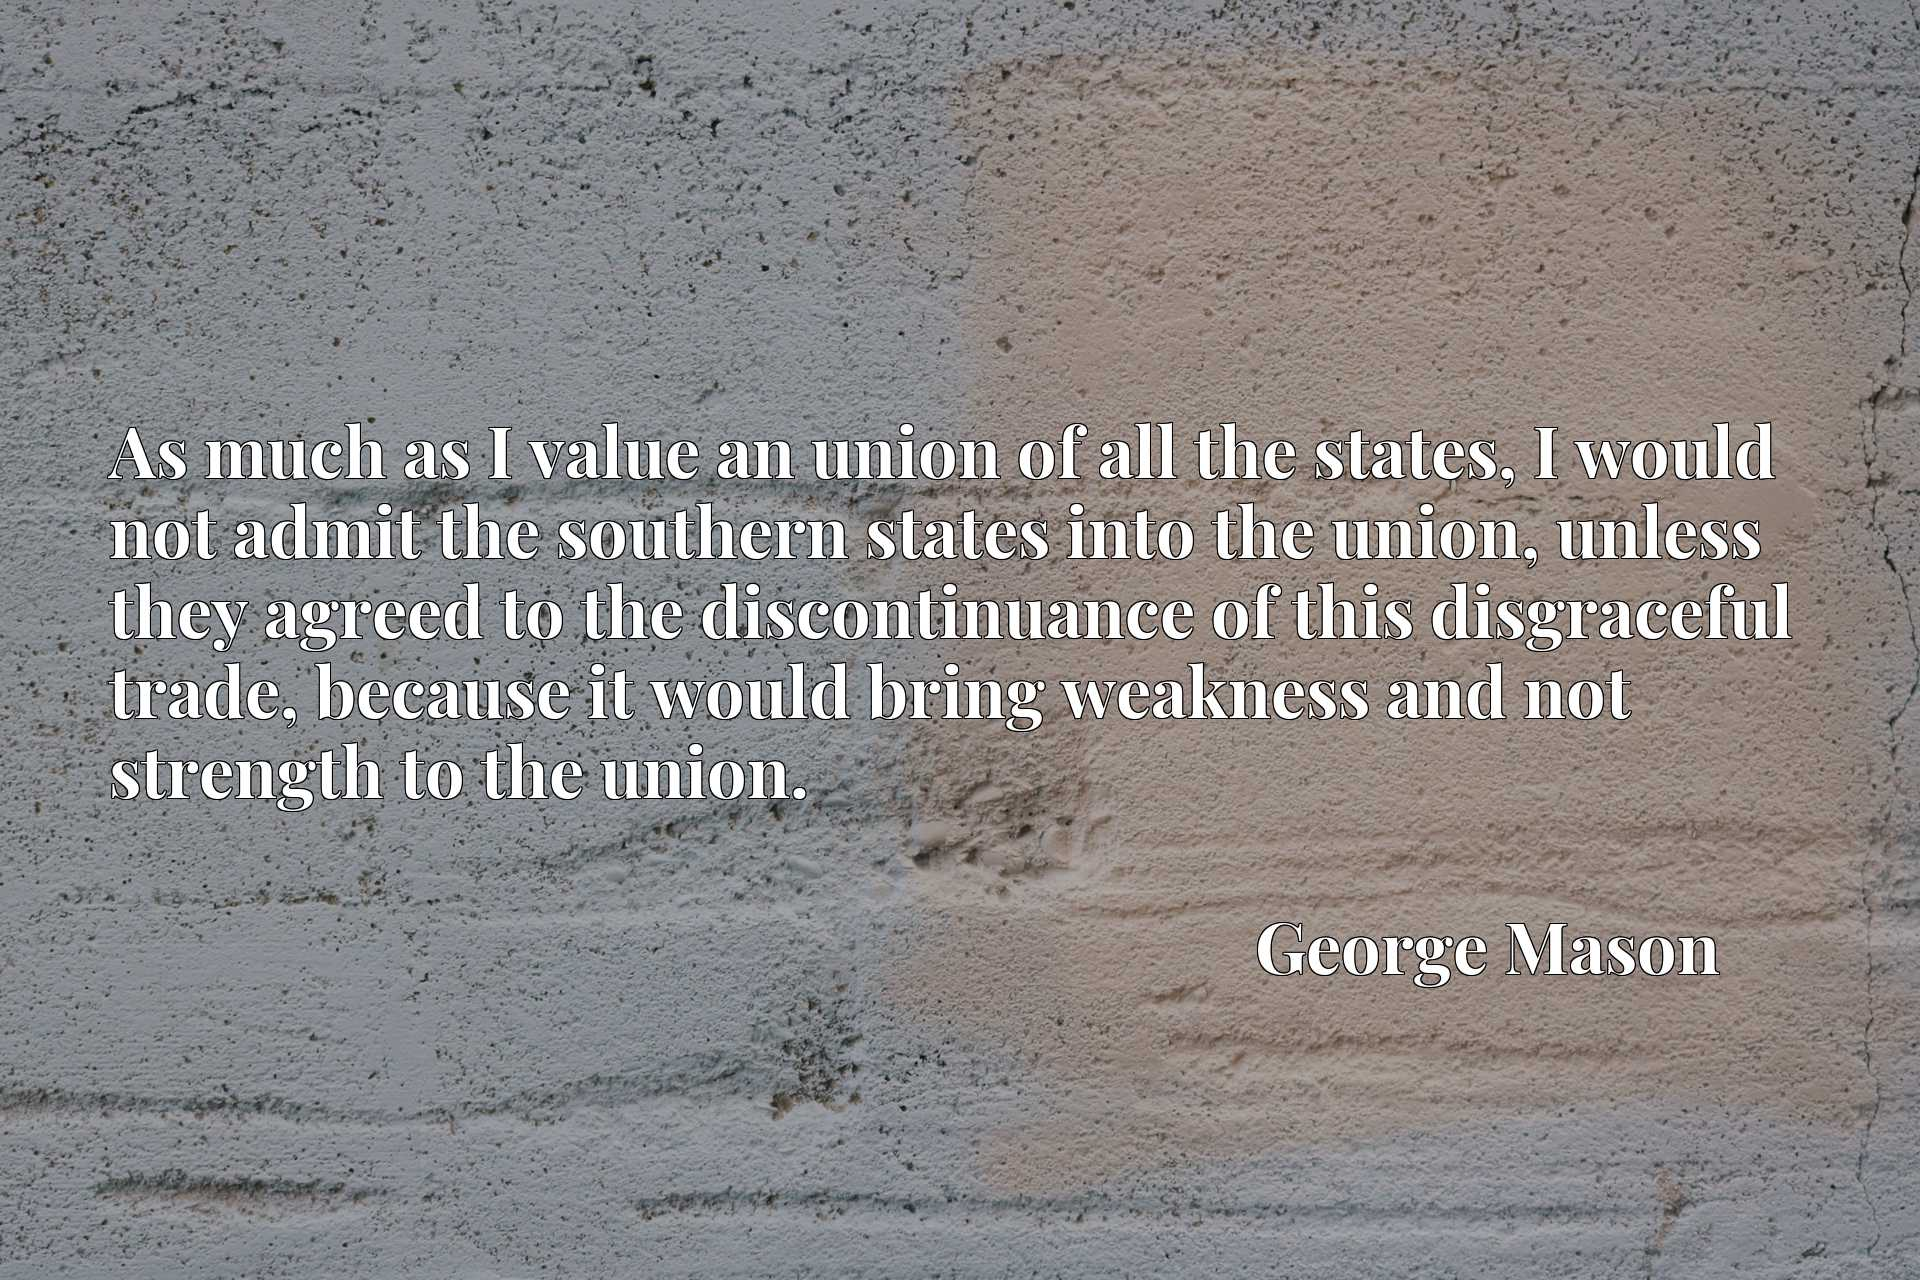 As much as I value an union of all the states, I would not admit the southern states into the union, unless they agreed to the discontinuance of this disgraceful trade, because it would bring weakness and not strength to the union.